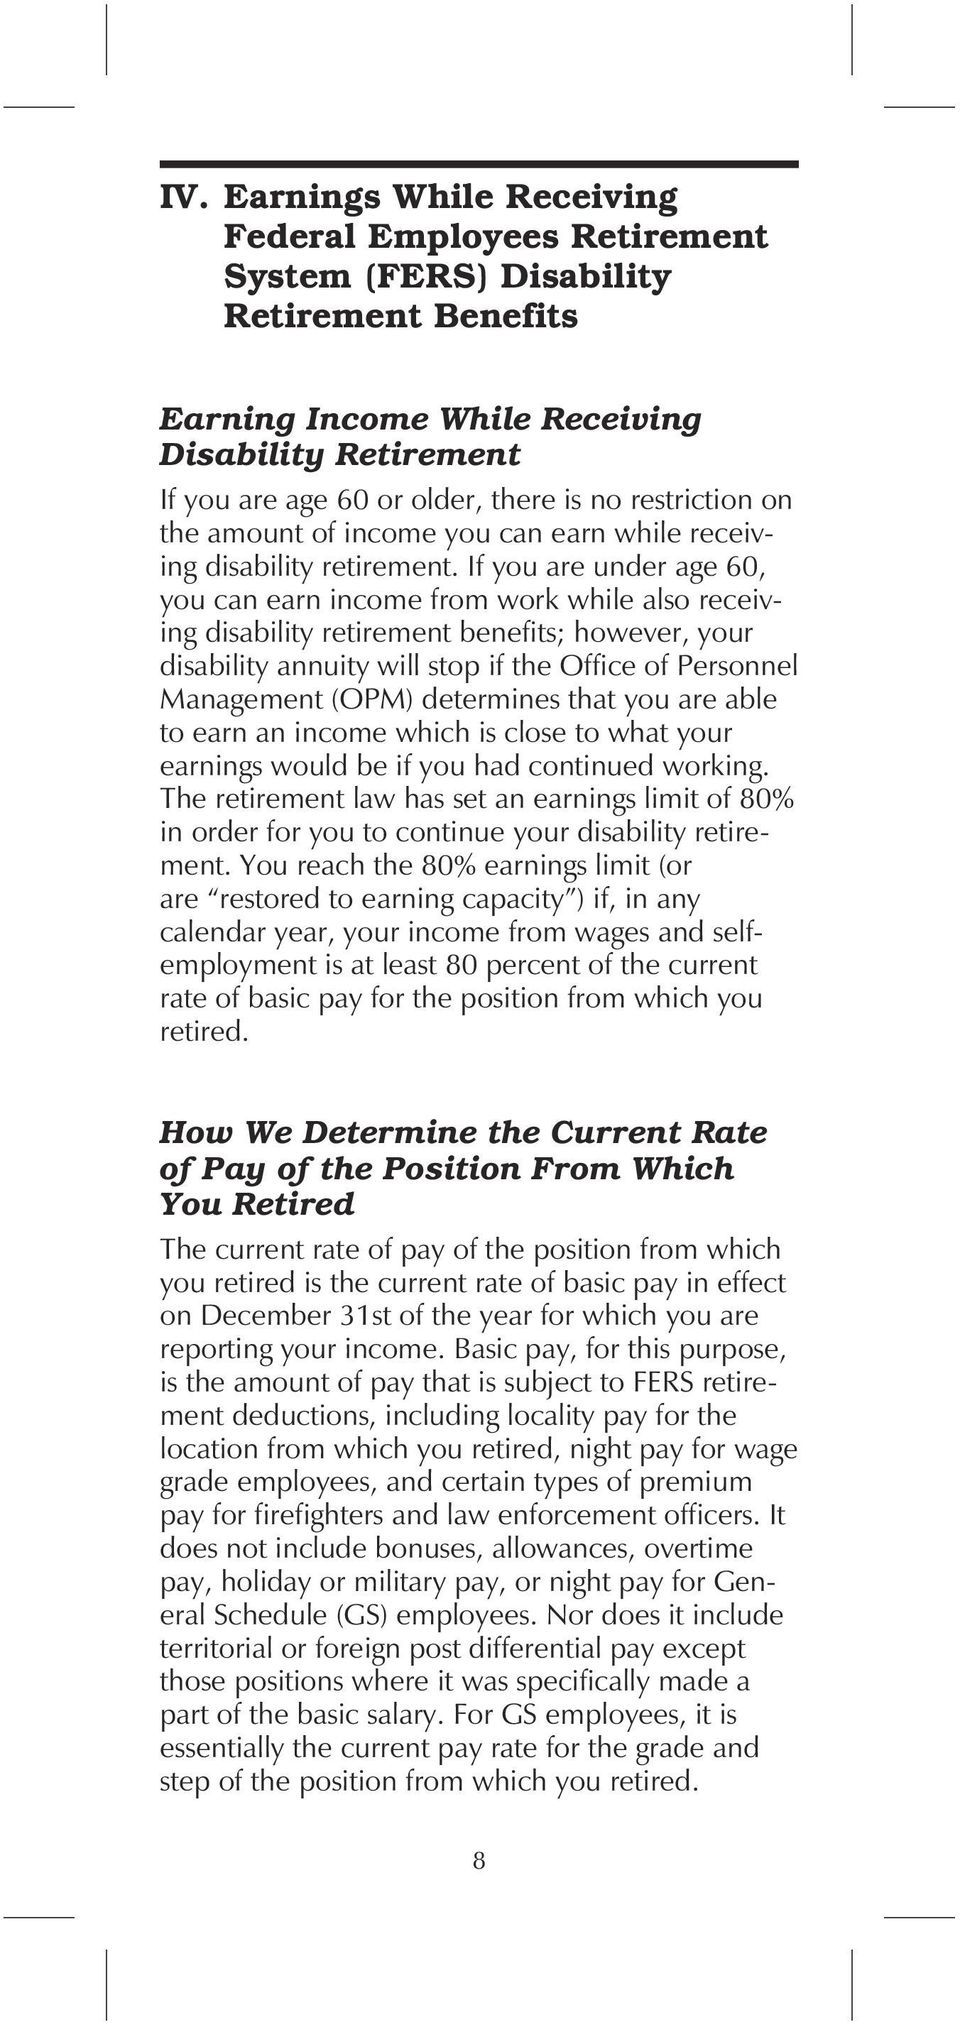 If you are under age 60, you can earn income from work while also receiving disability retirement benefits; however, your disability annuity will stop if the Office of Personnel Management (OPM)